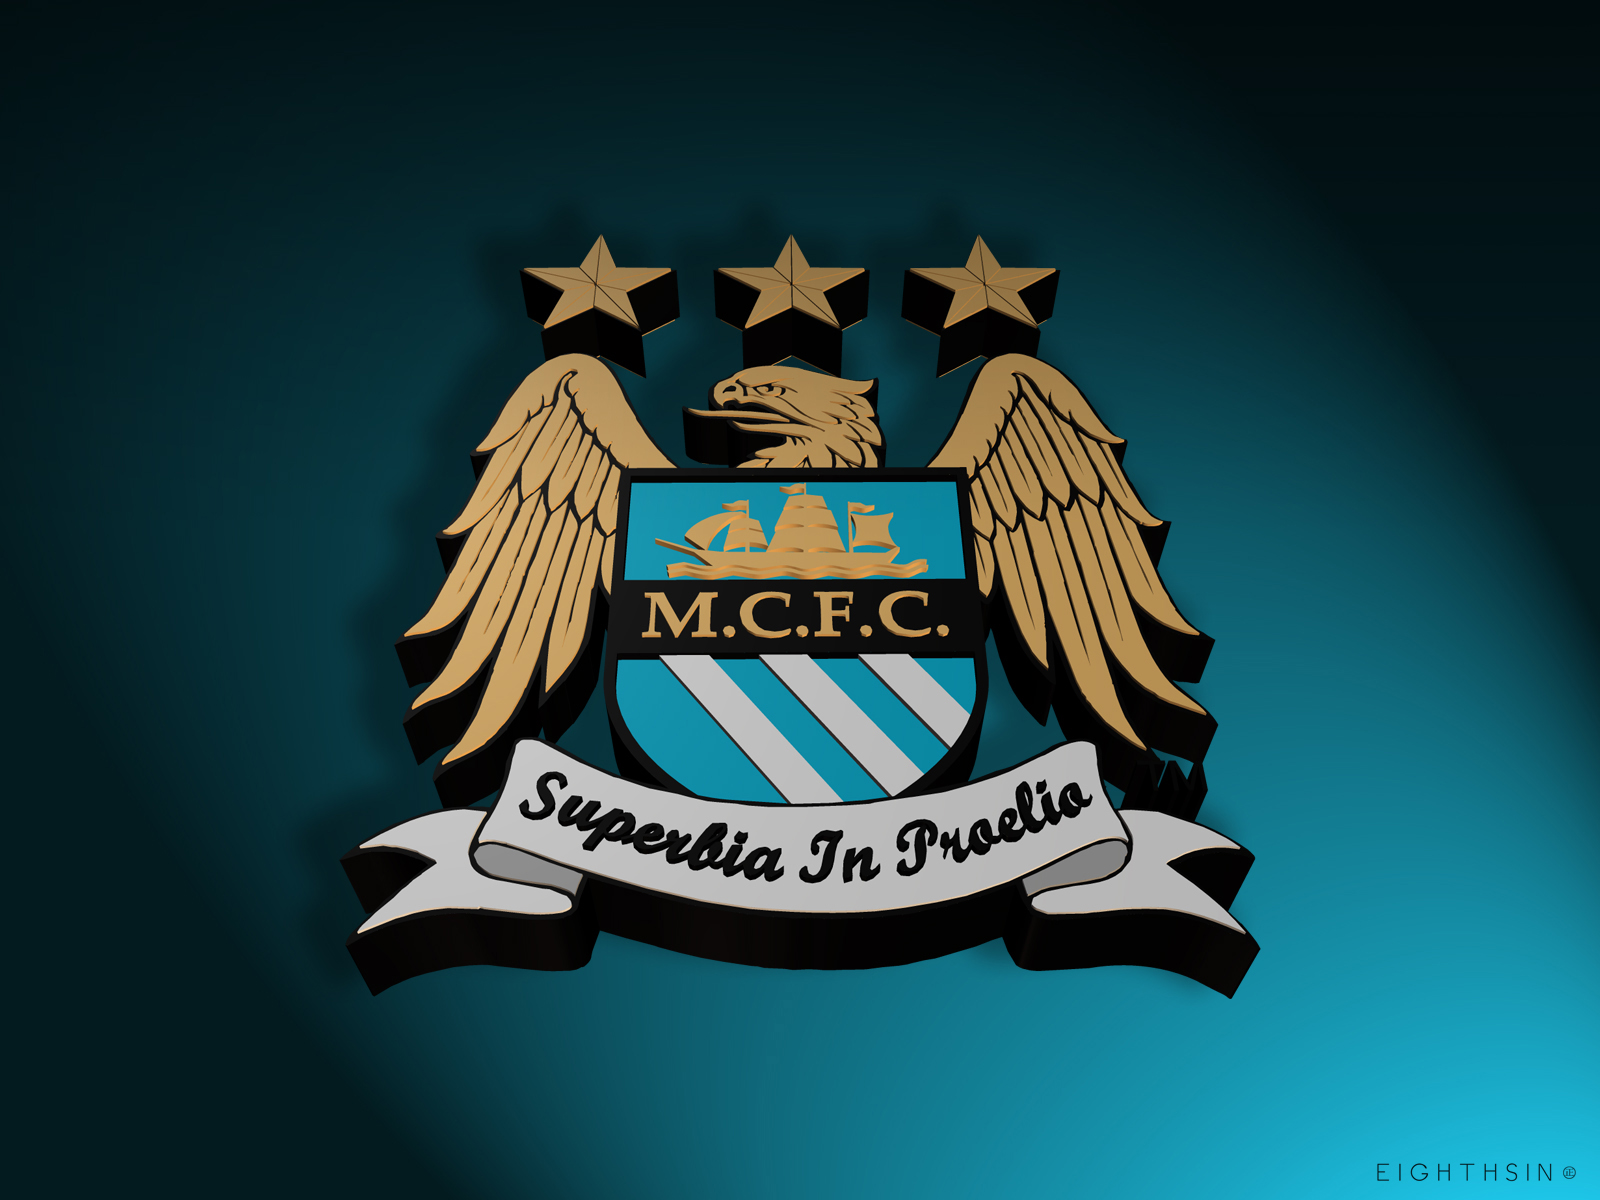 Free Download Manchester City 3d Desktop Wallpaper Eighthsin